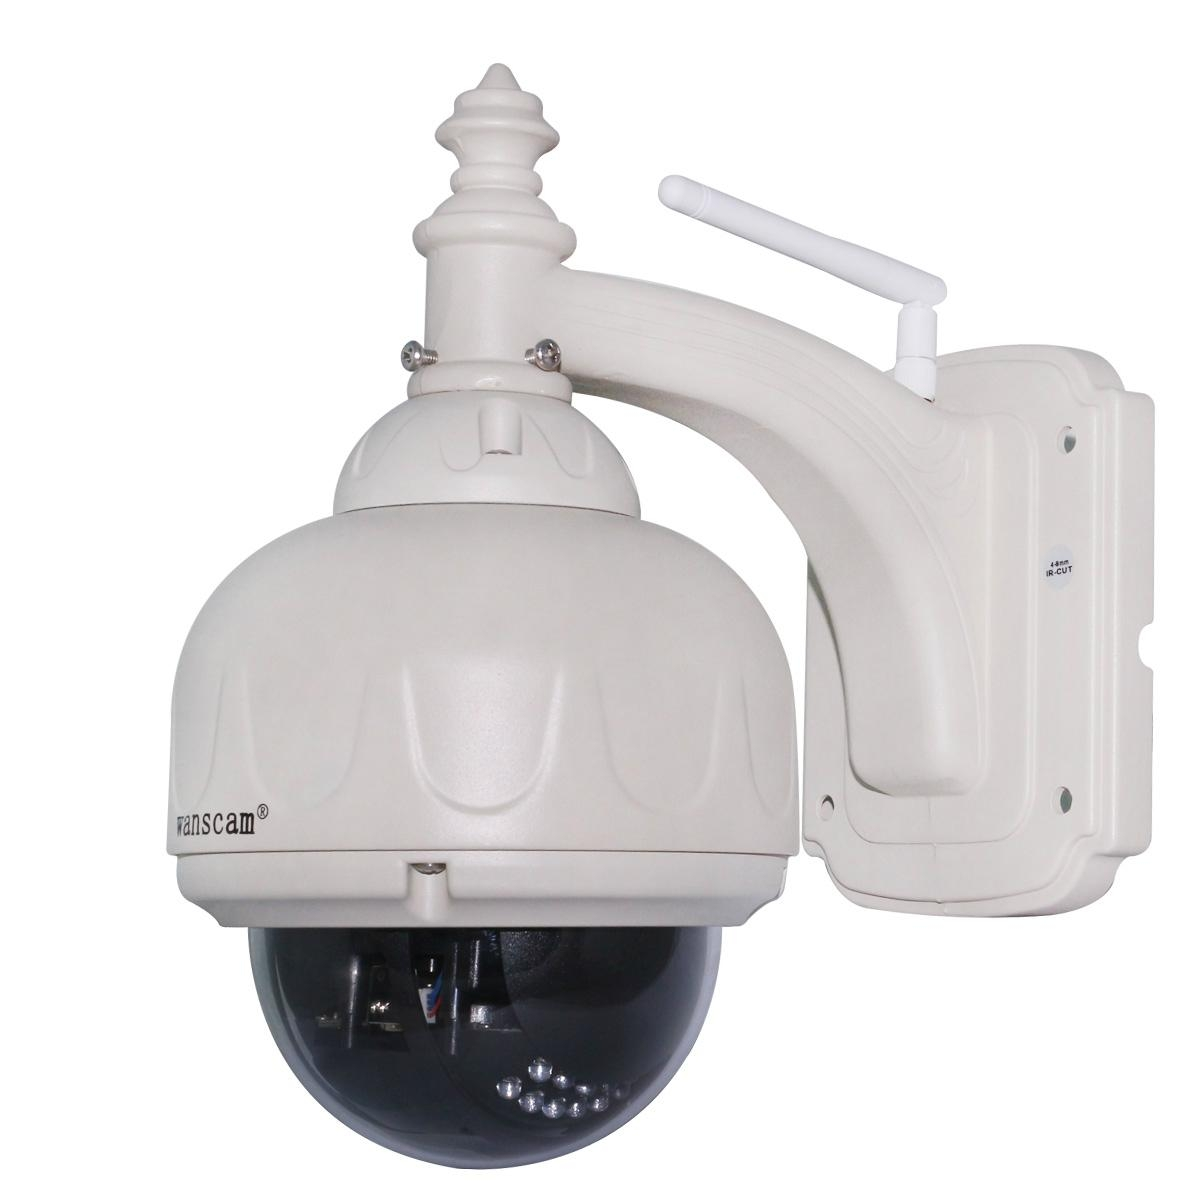 Home Surveillance 1MP HD PTZ Zoom Outdoor Dome H.264 Mobile View IP Camera - HW0028 - wanscam ...